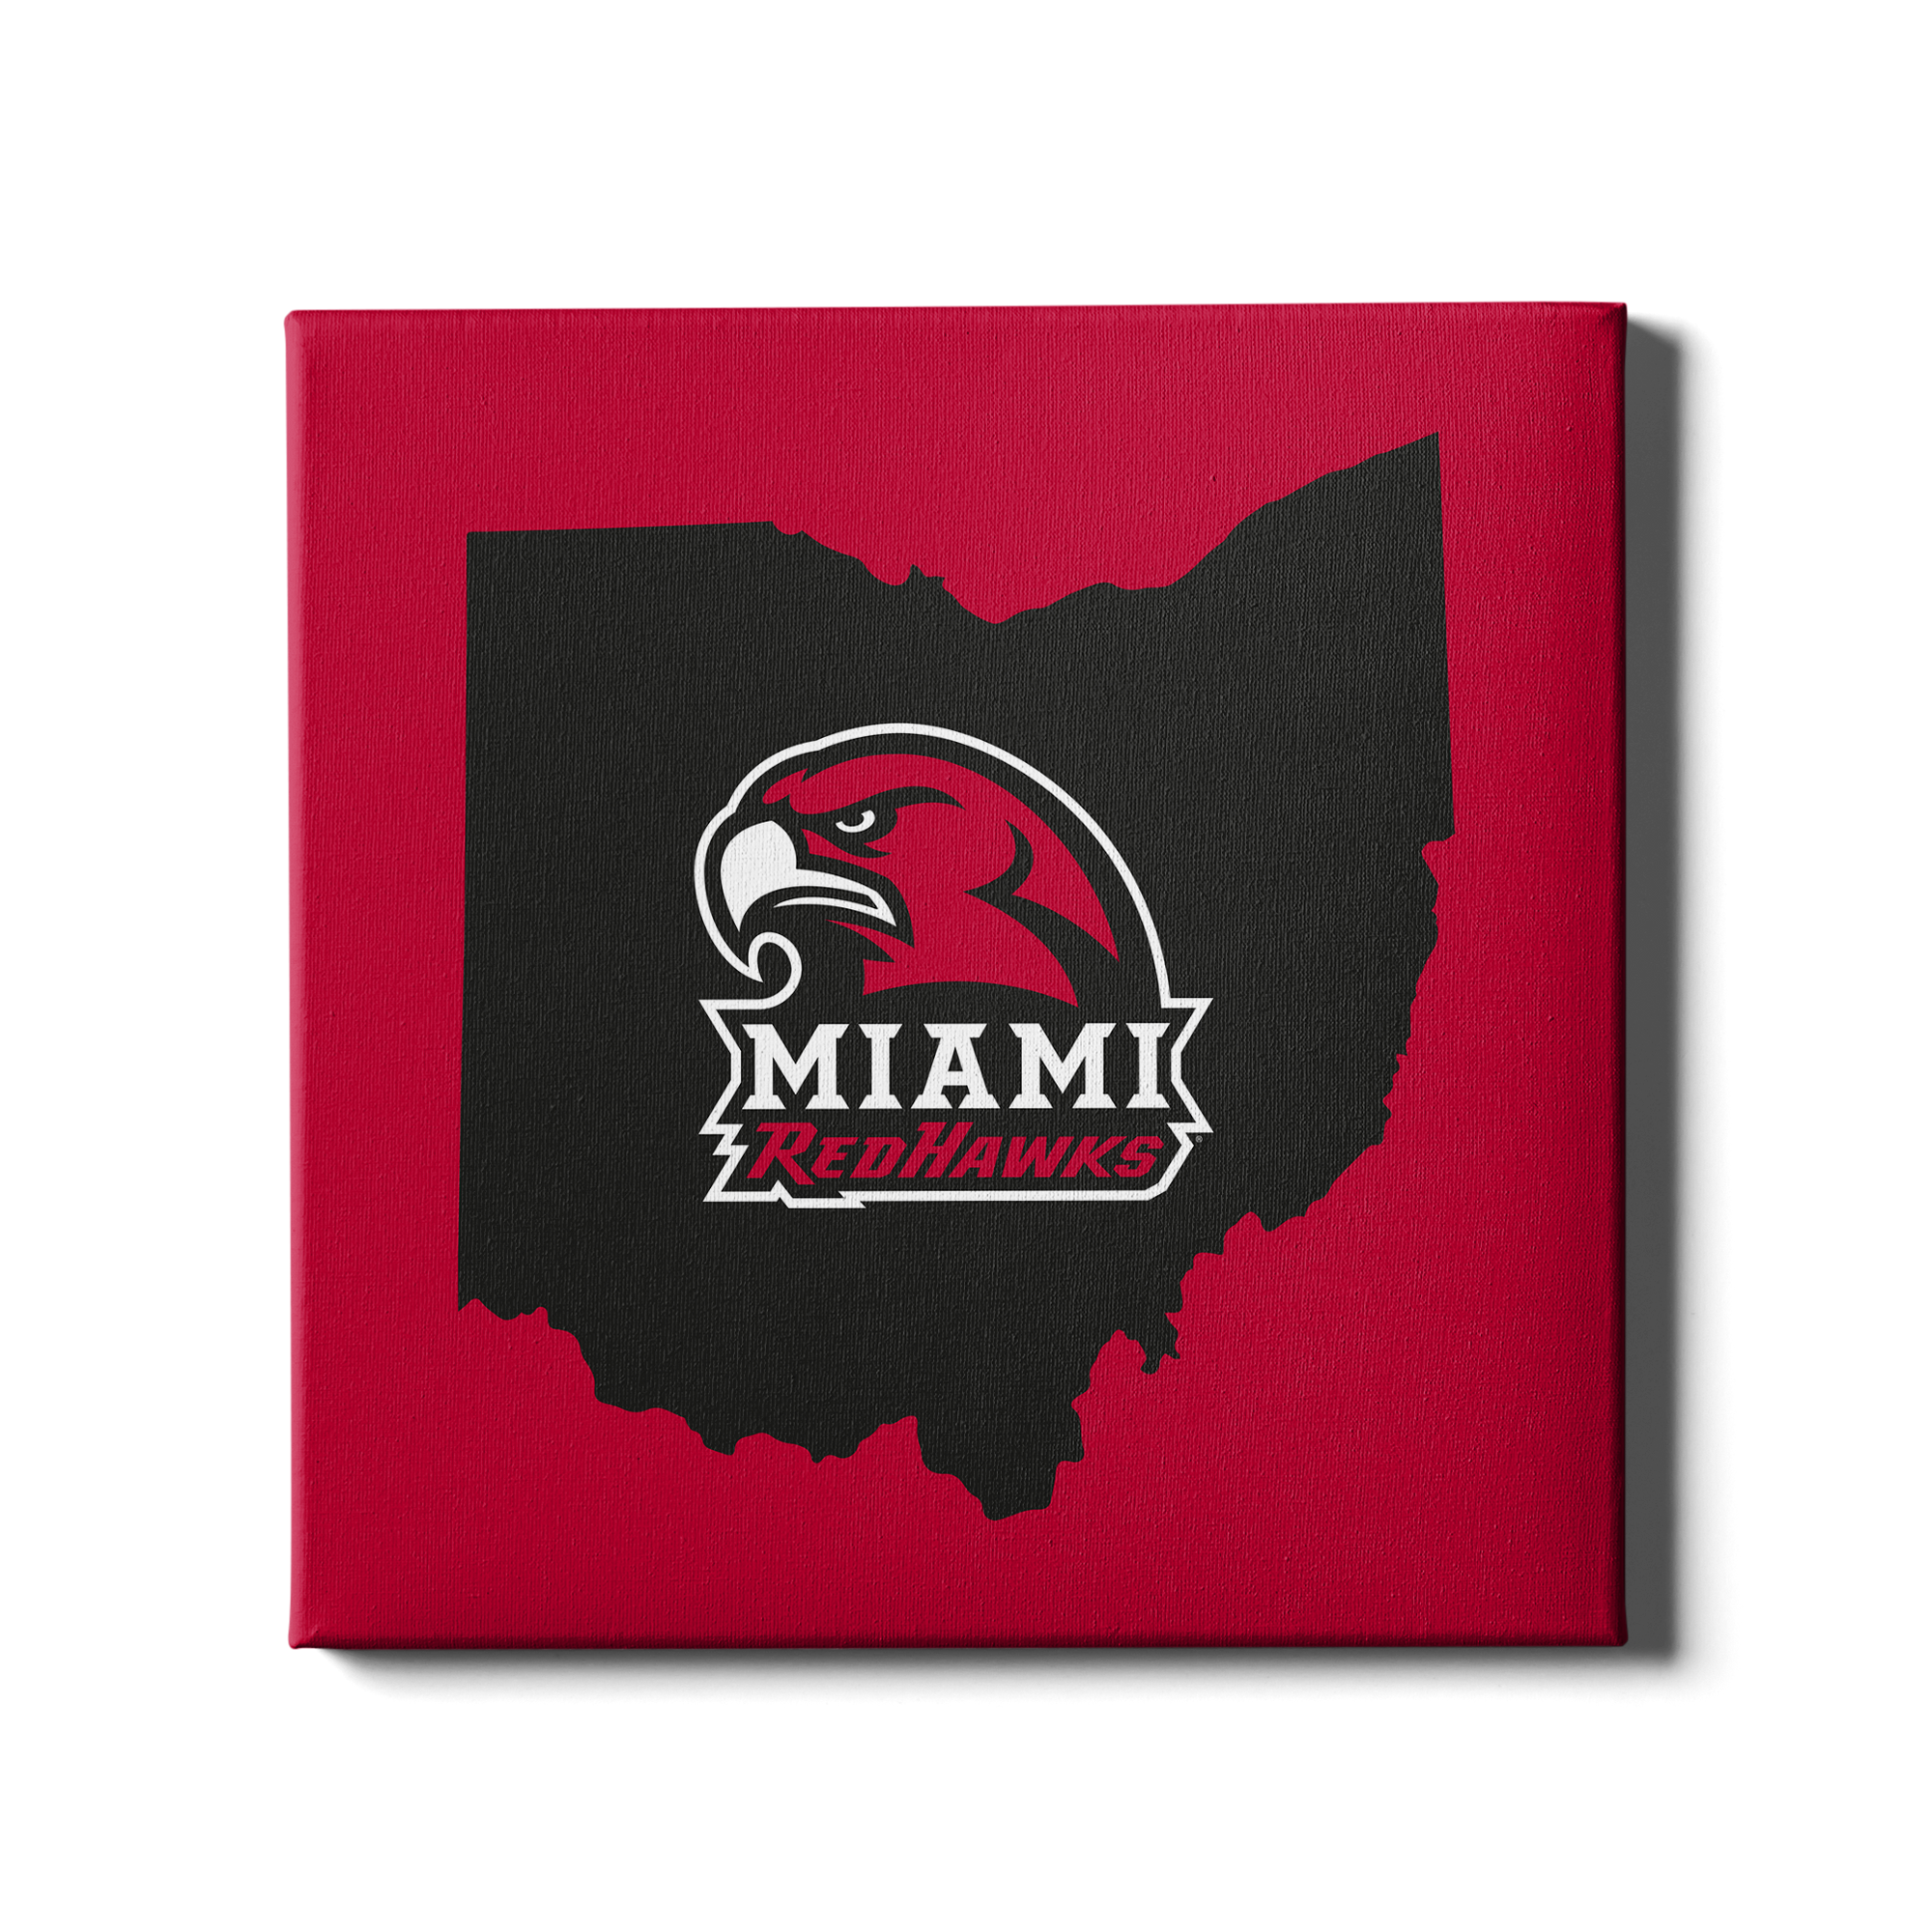 Miami RedHawks<sub>&reg;</sub> - RedHawks<sub>&reg;</sub> - College Wall Art#Canvas